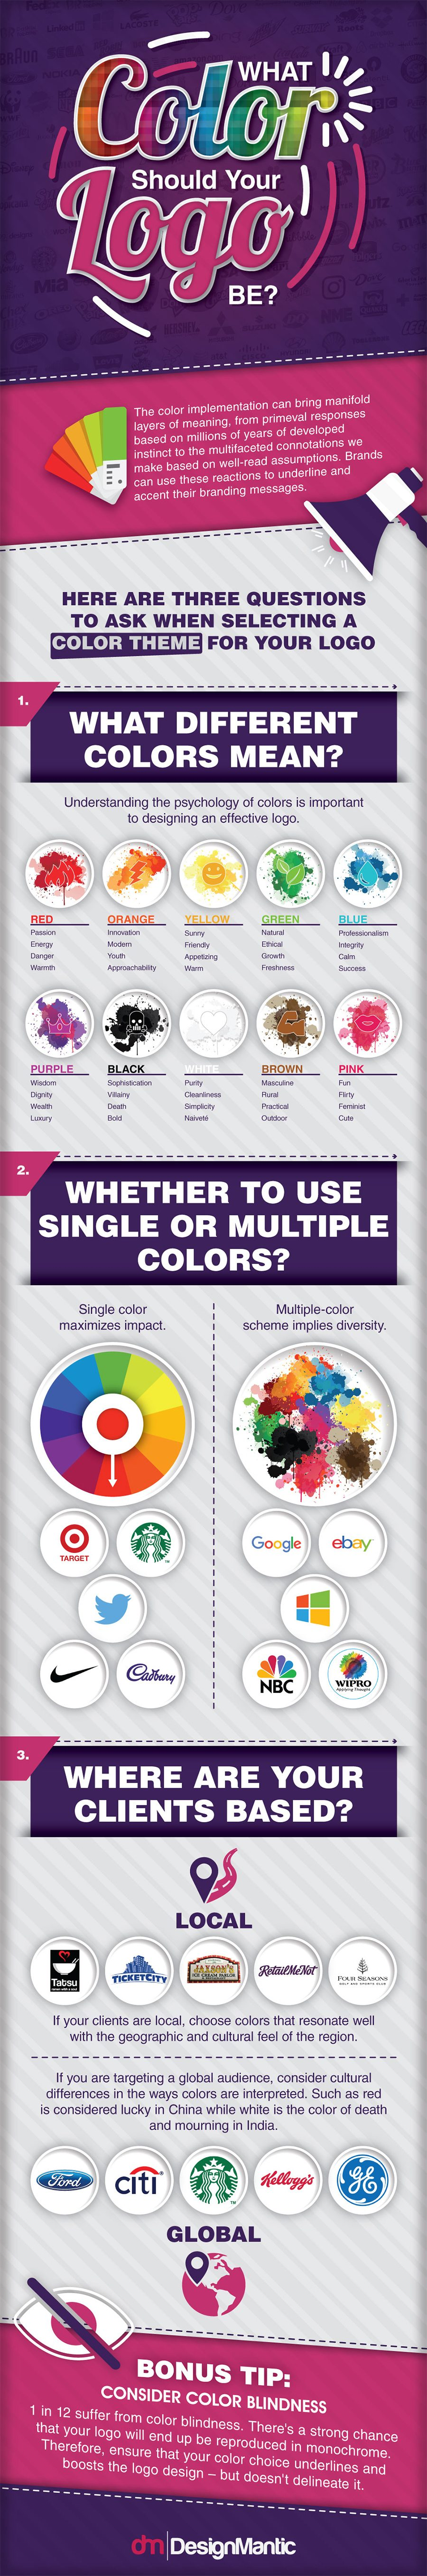 What Color Should Your Logo Be? What Different Colors Mean [Infographic] | Social Media Today